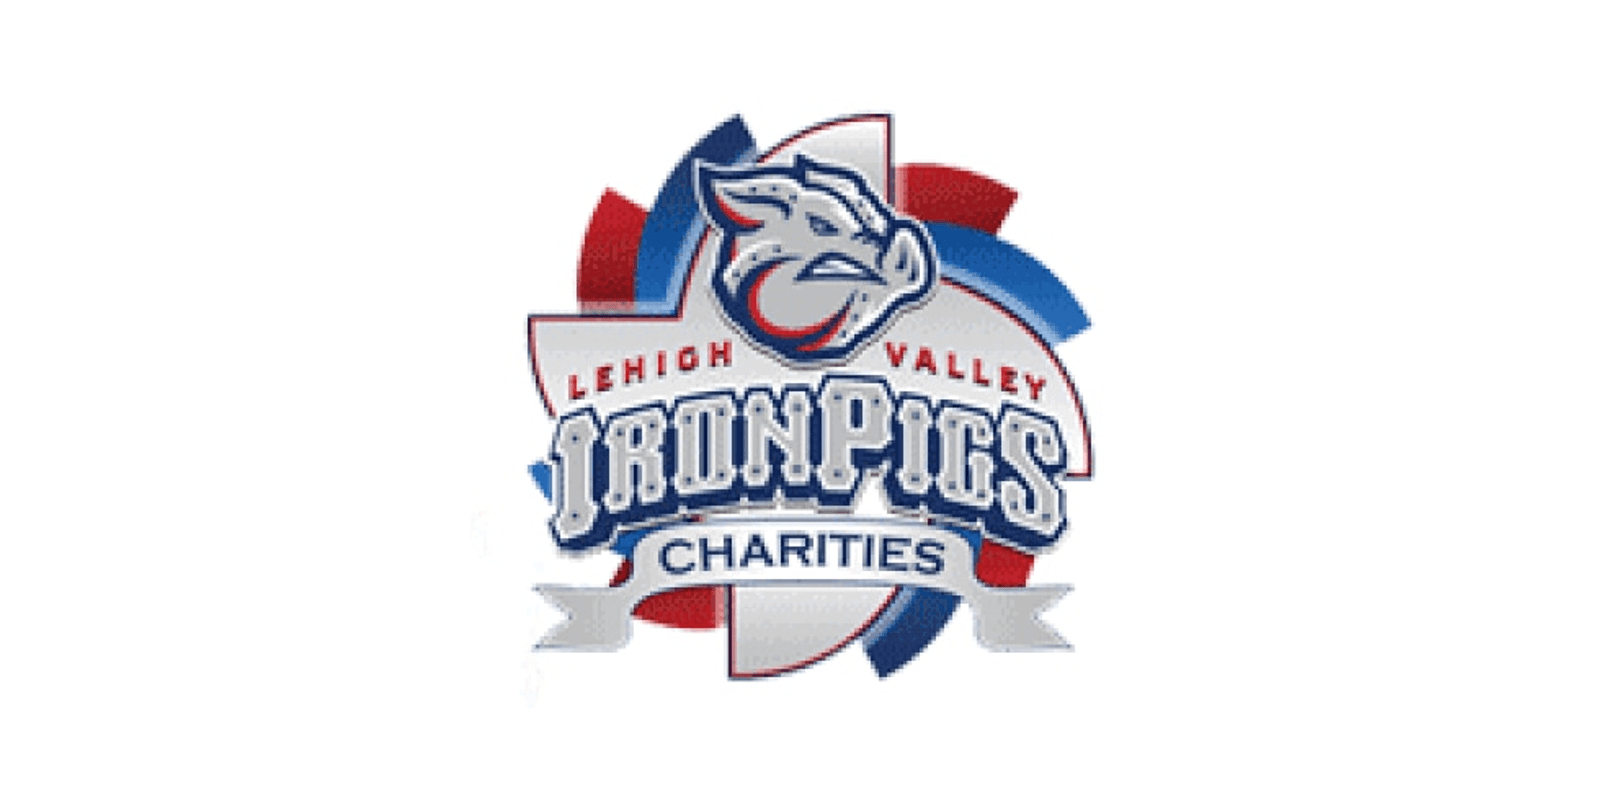 Maverick Media Supports Iron Pigs Charities